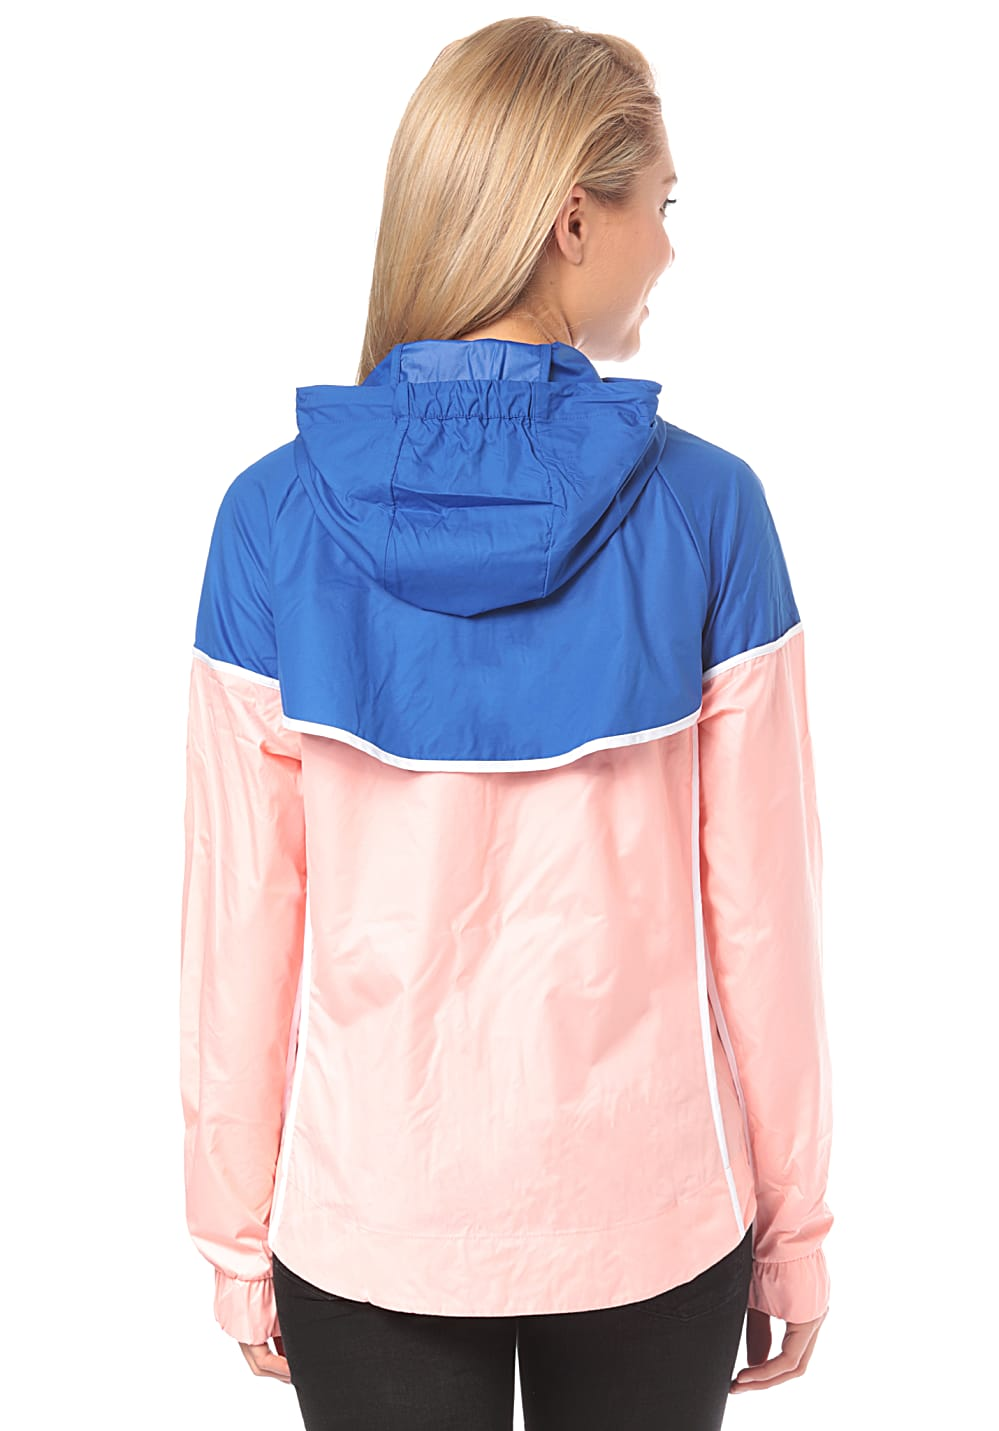 Planet Mujeres Windrunner Nike Para Sportswear Chaqueta Eq1wpxyxq Rosa rxn4vr